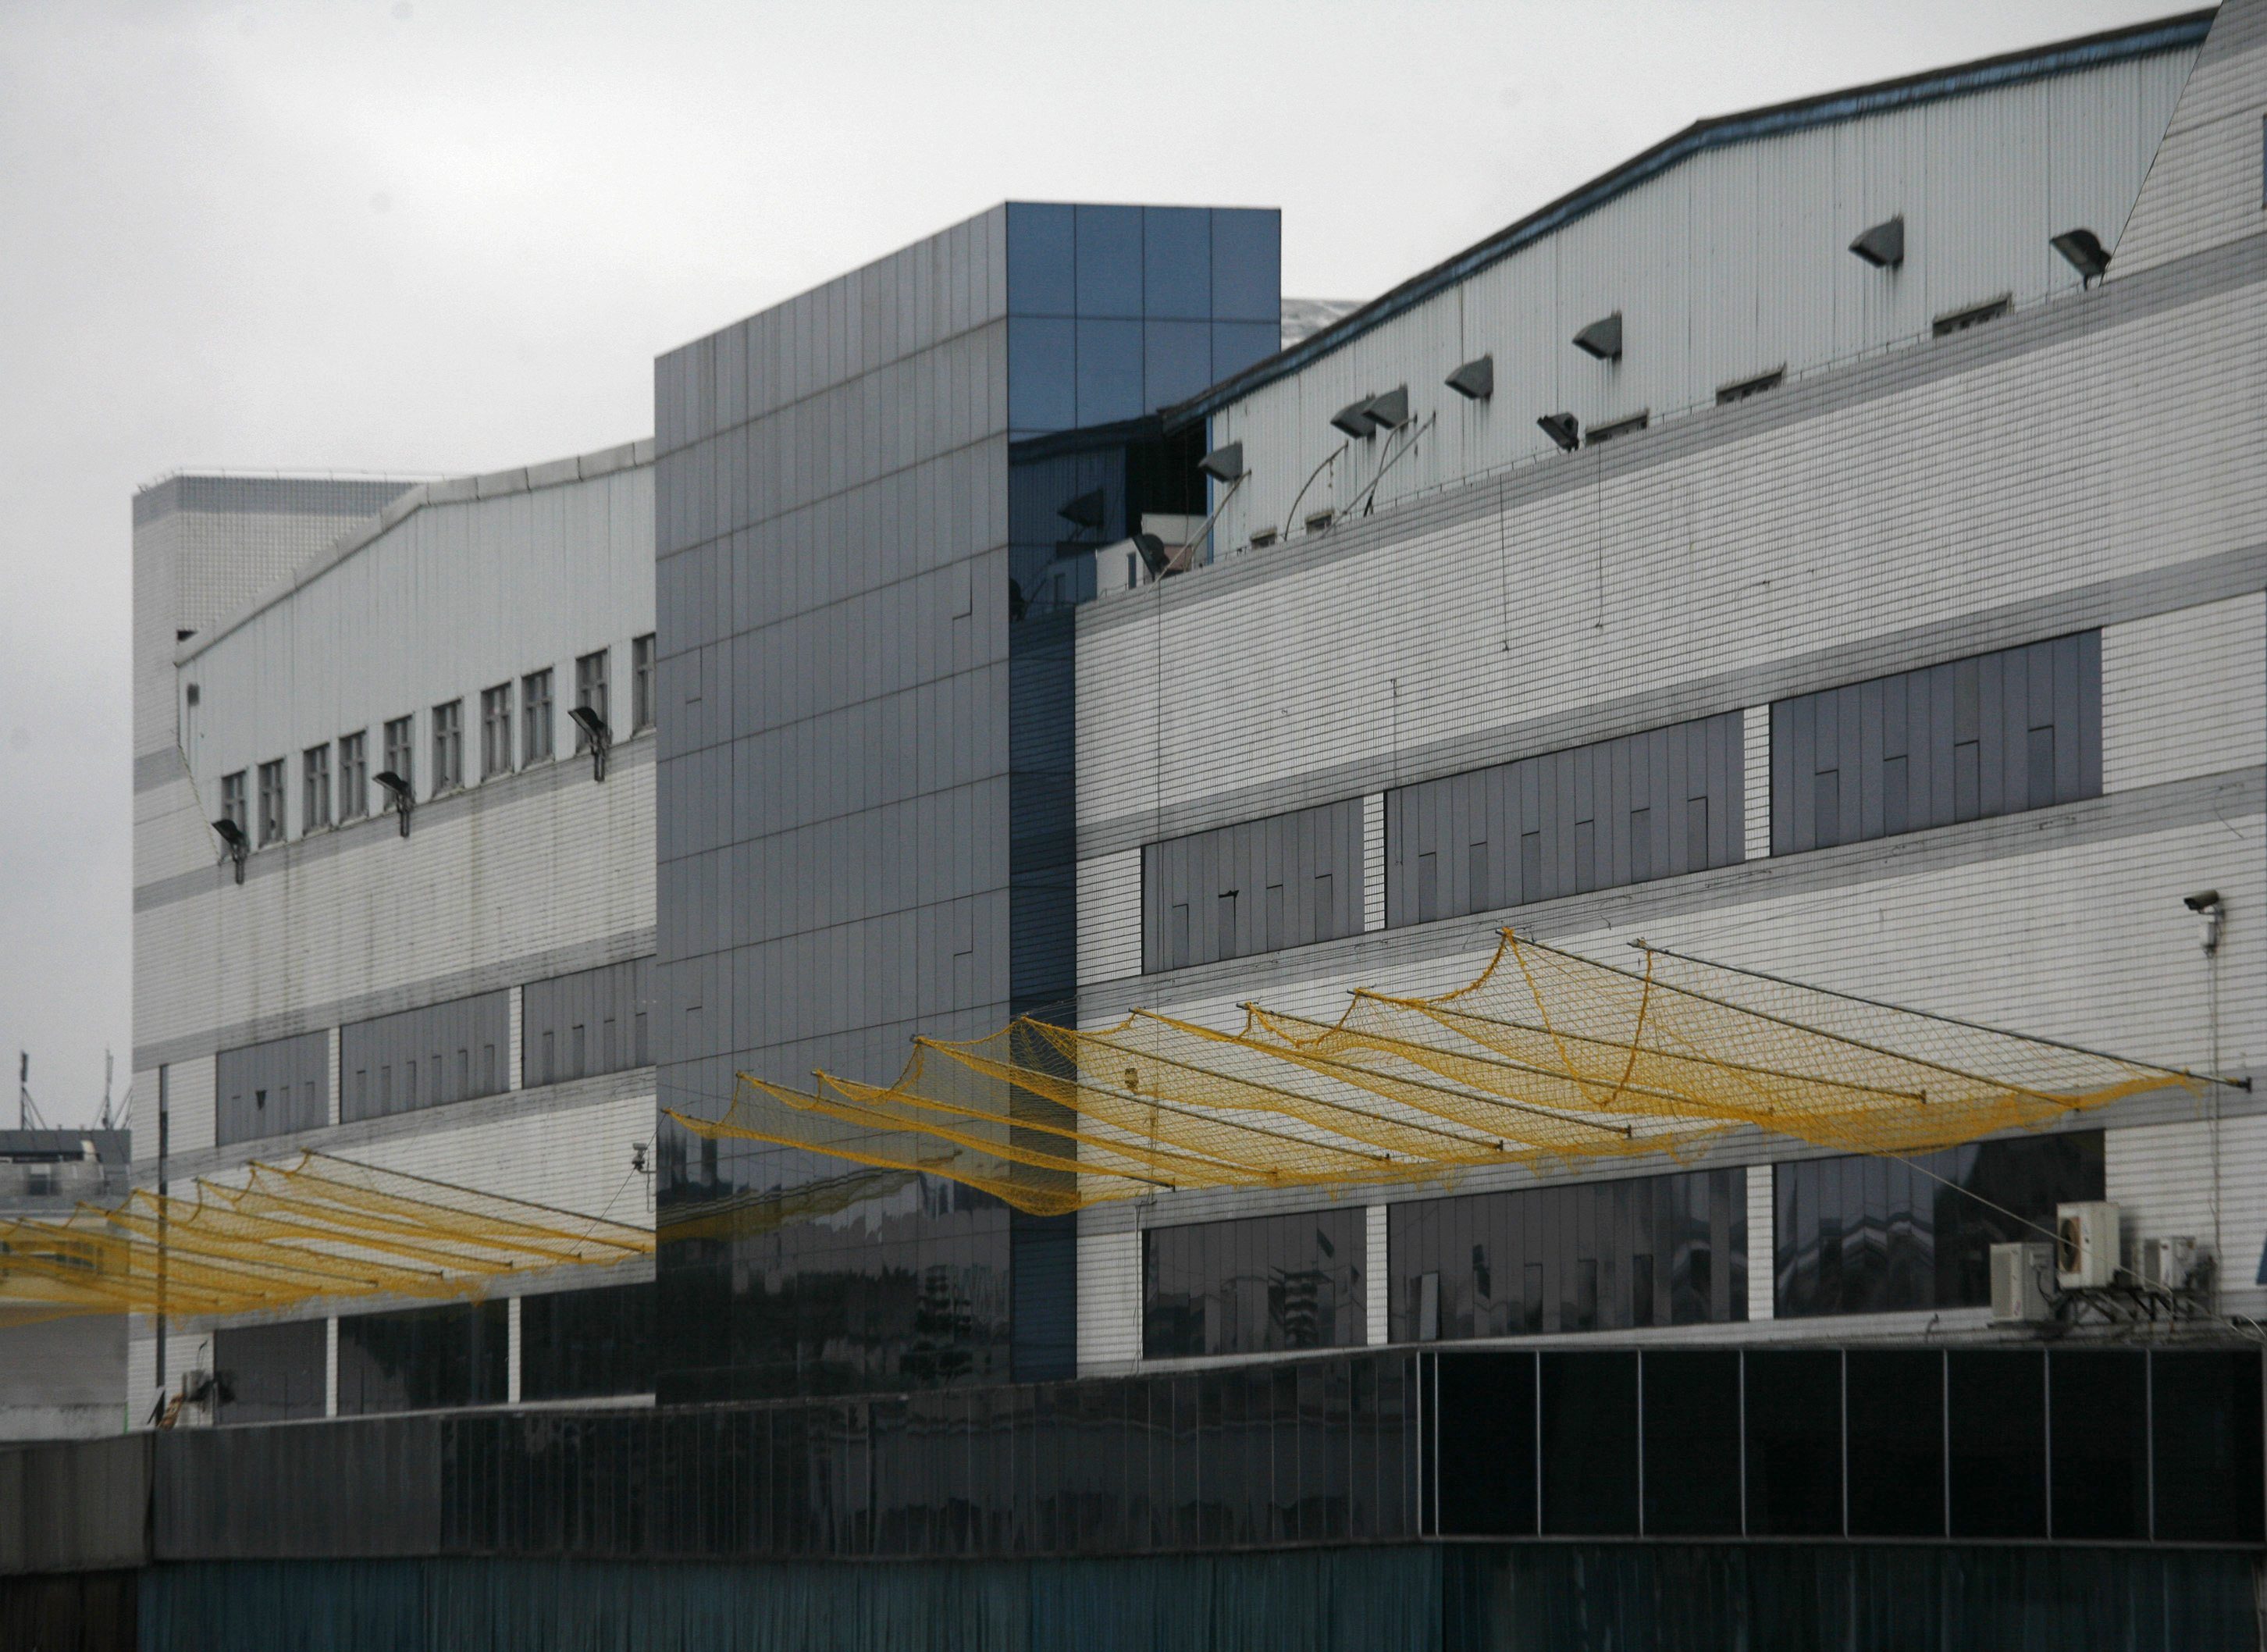 Newly installed nets to prevent workers from jumping to their deaths are pictured outside one of the Foxconn's factory buildings in the township of Longhua, in southern Guangdong province June 2, 2010. REUTERS/Bobby Yip